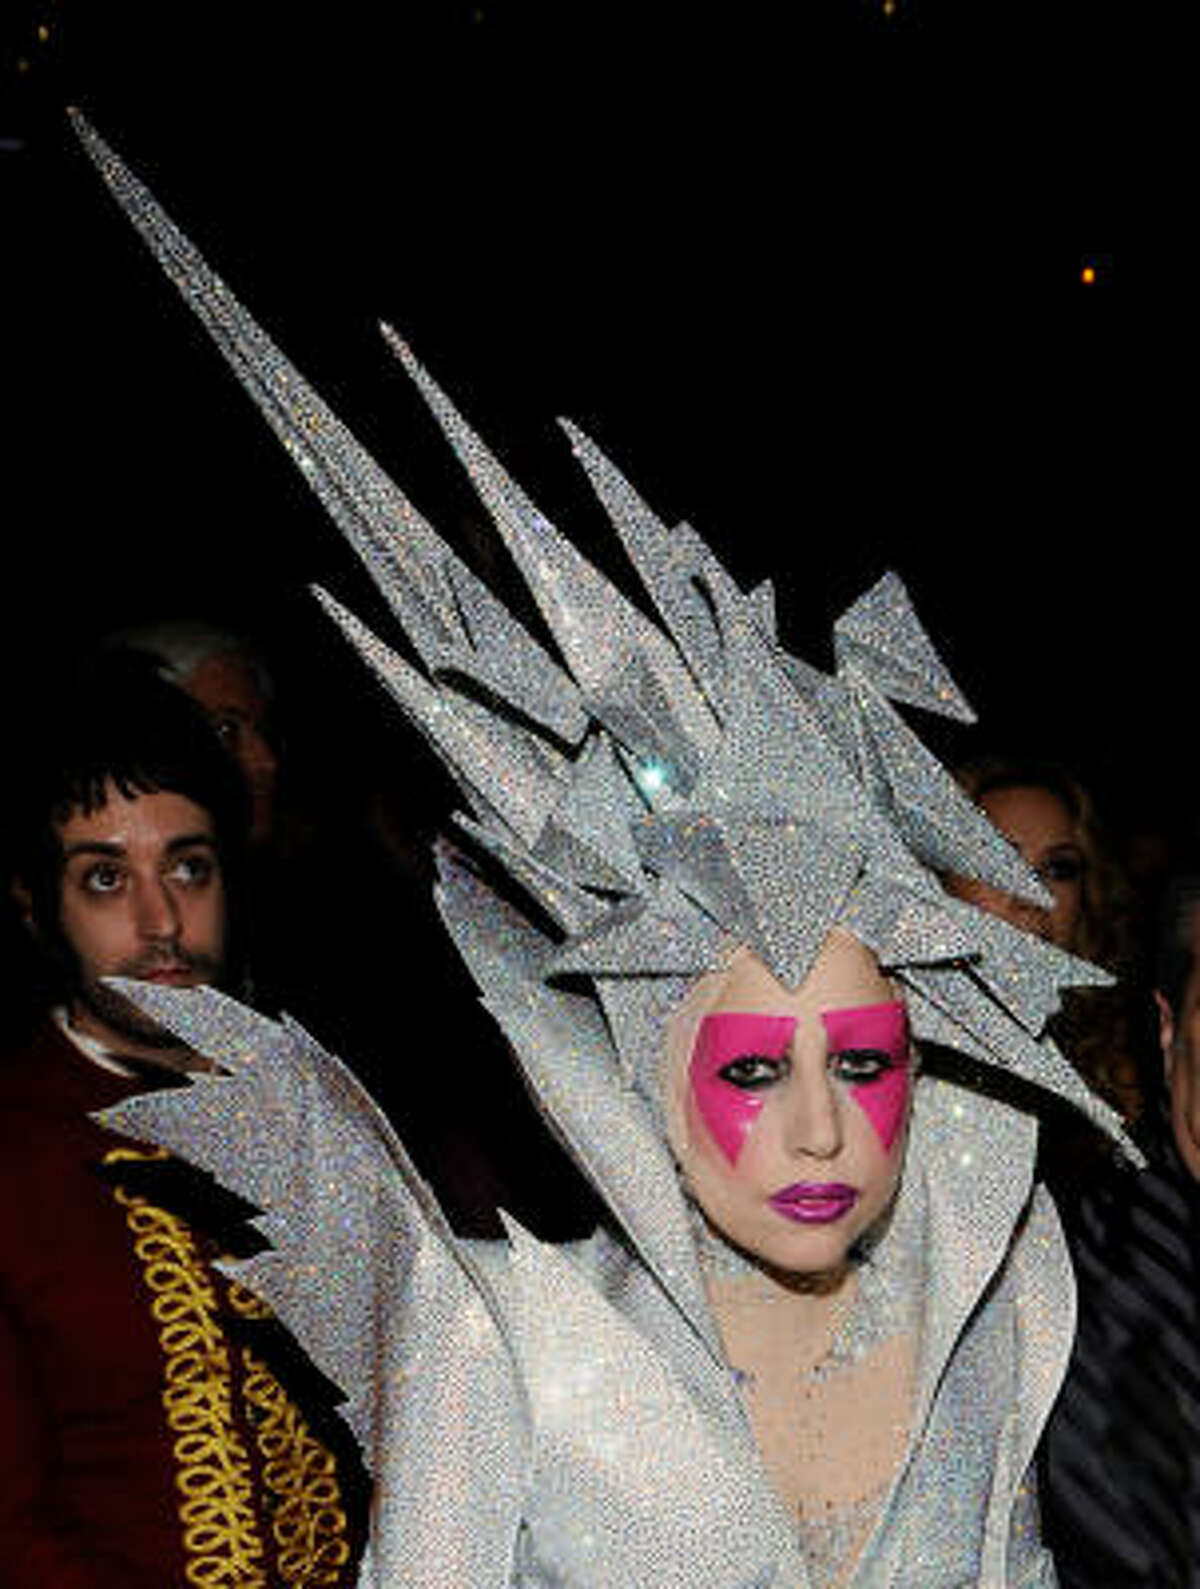 Lady Gaga's hat was sure to anger whoever was sitting behind her.